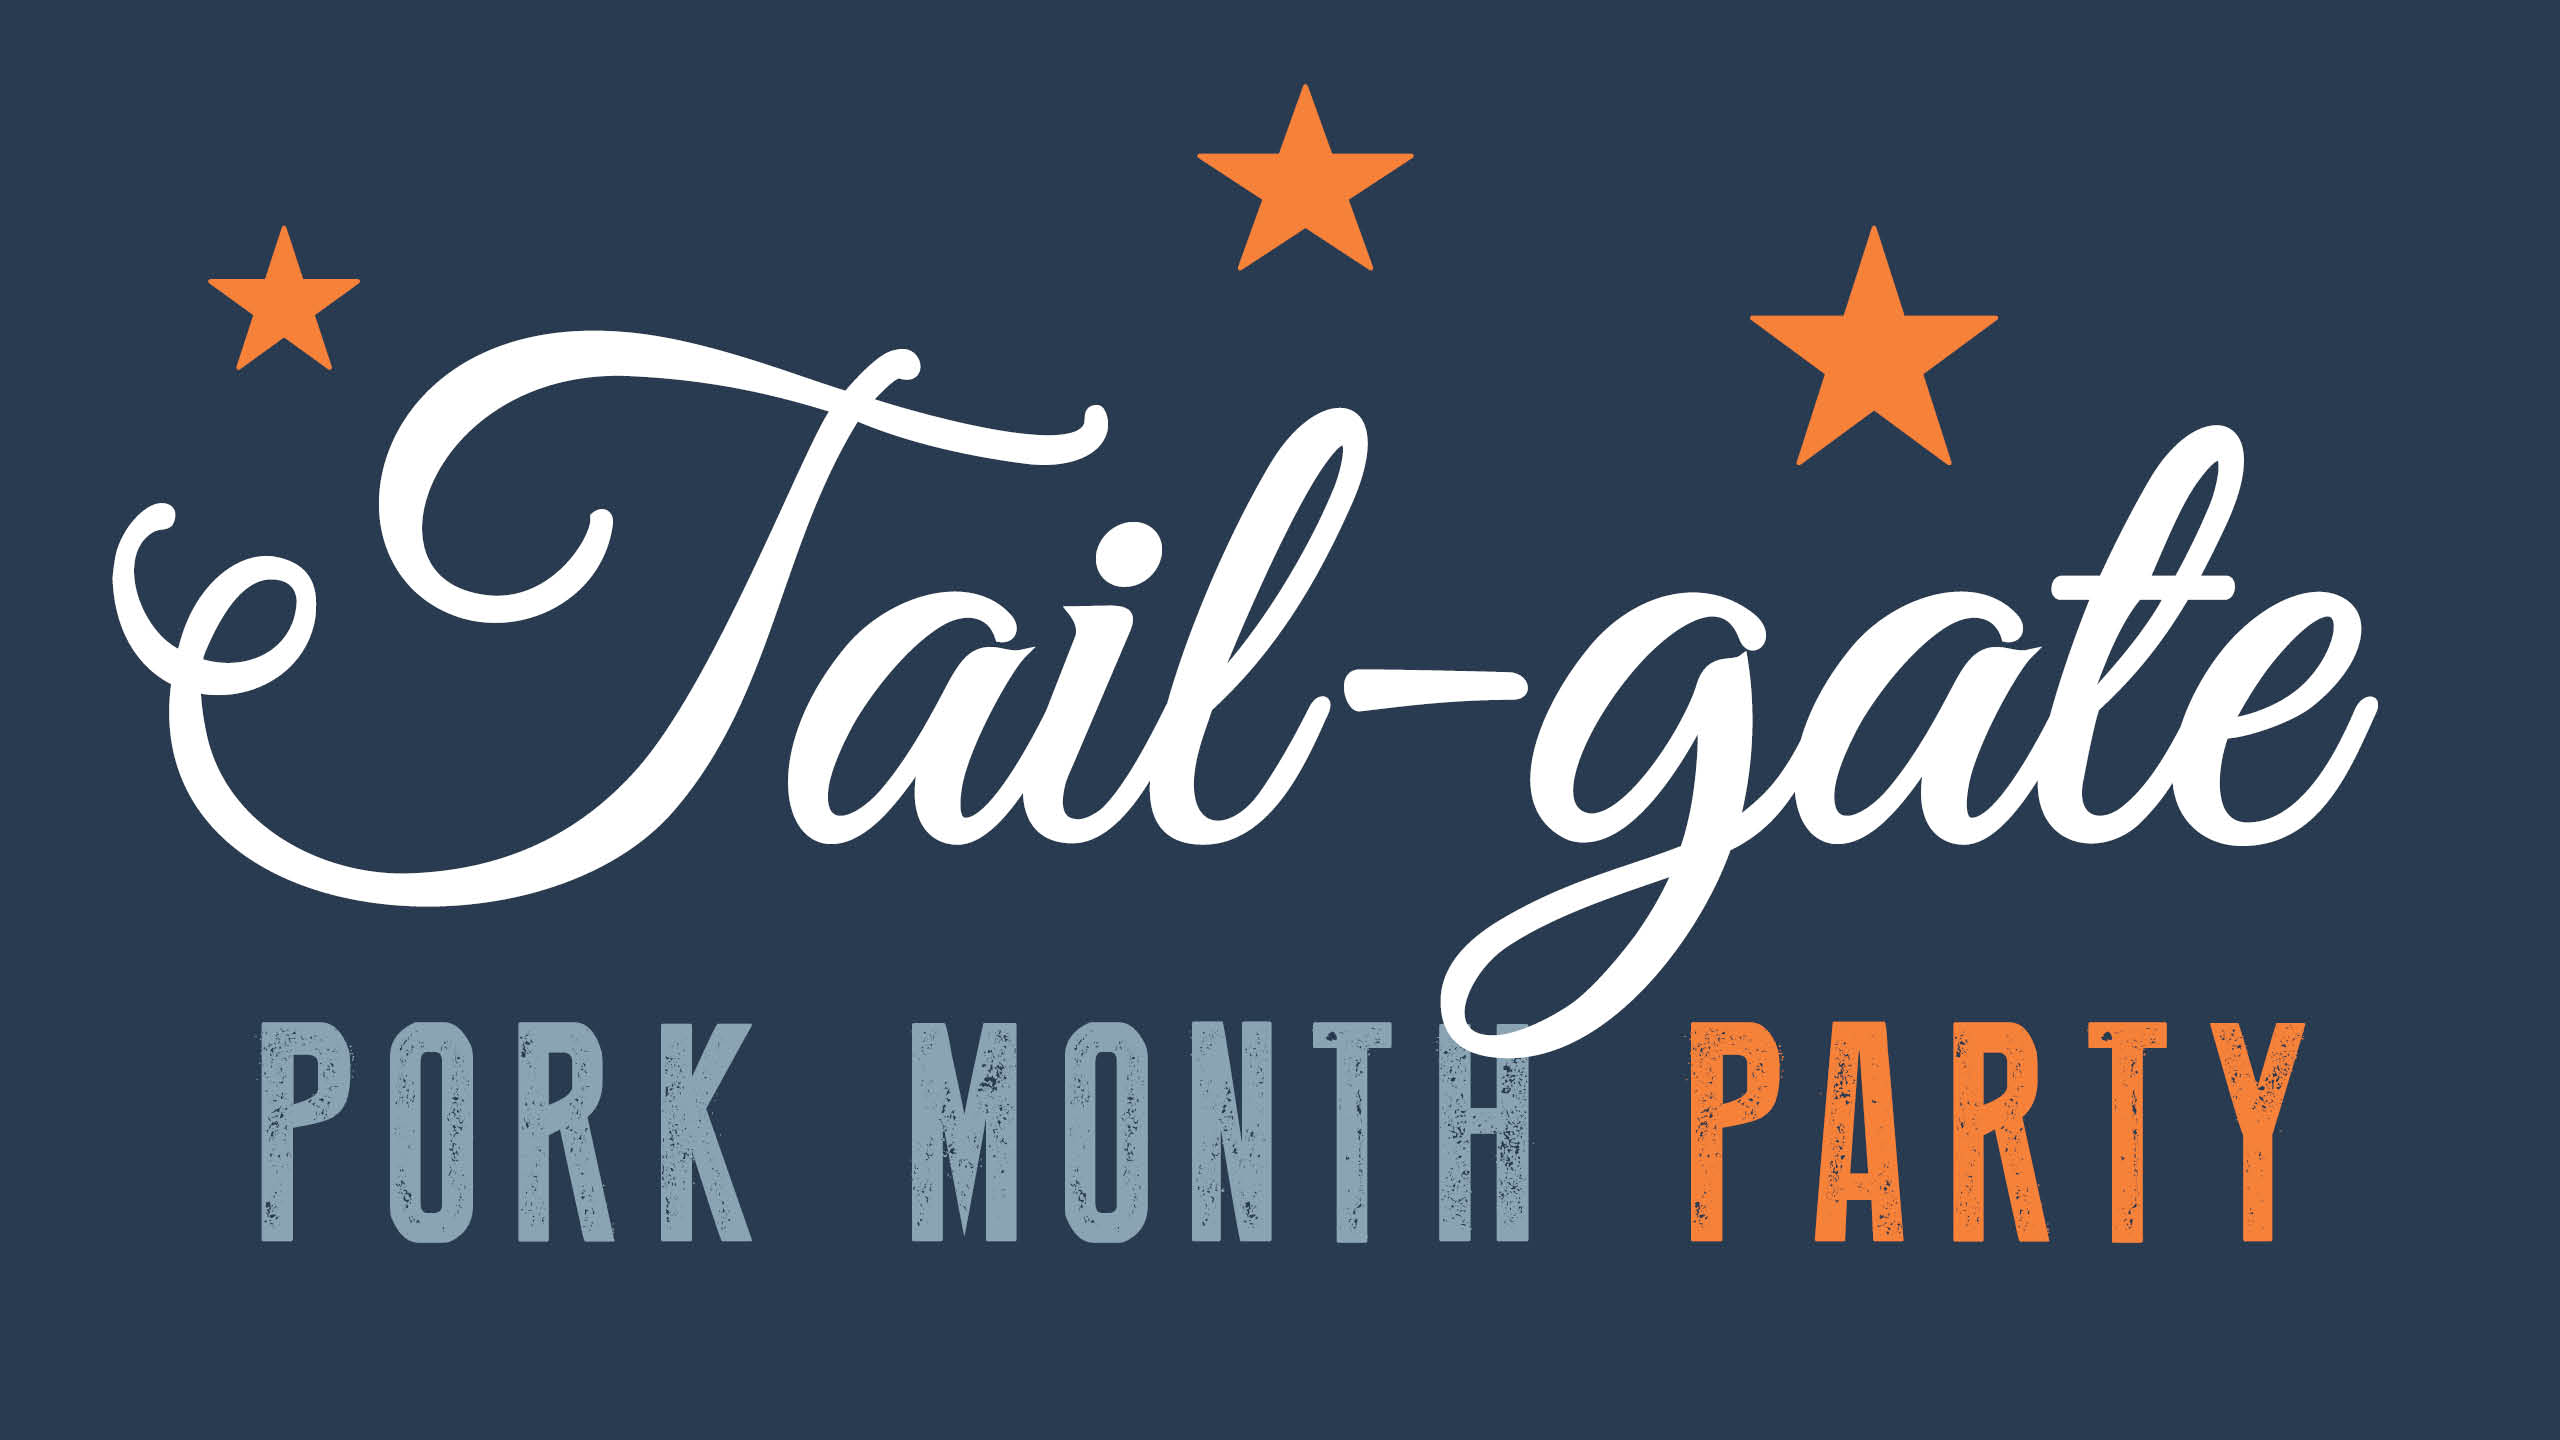 Tail-gate Pork Month Party